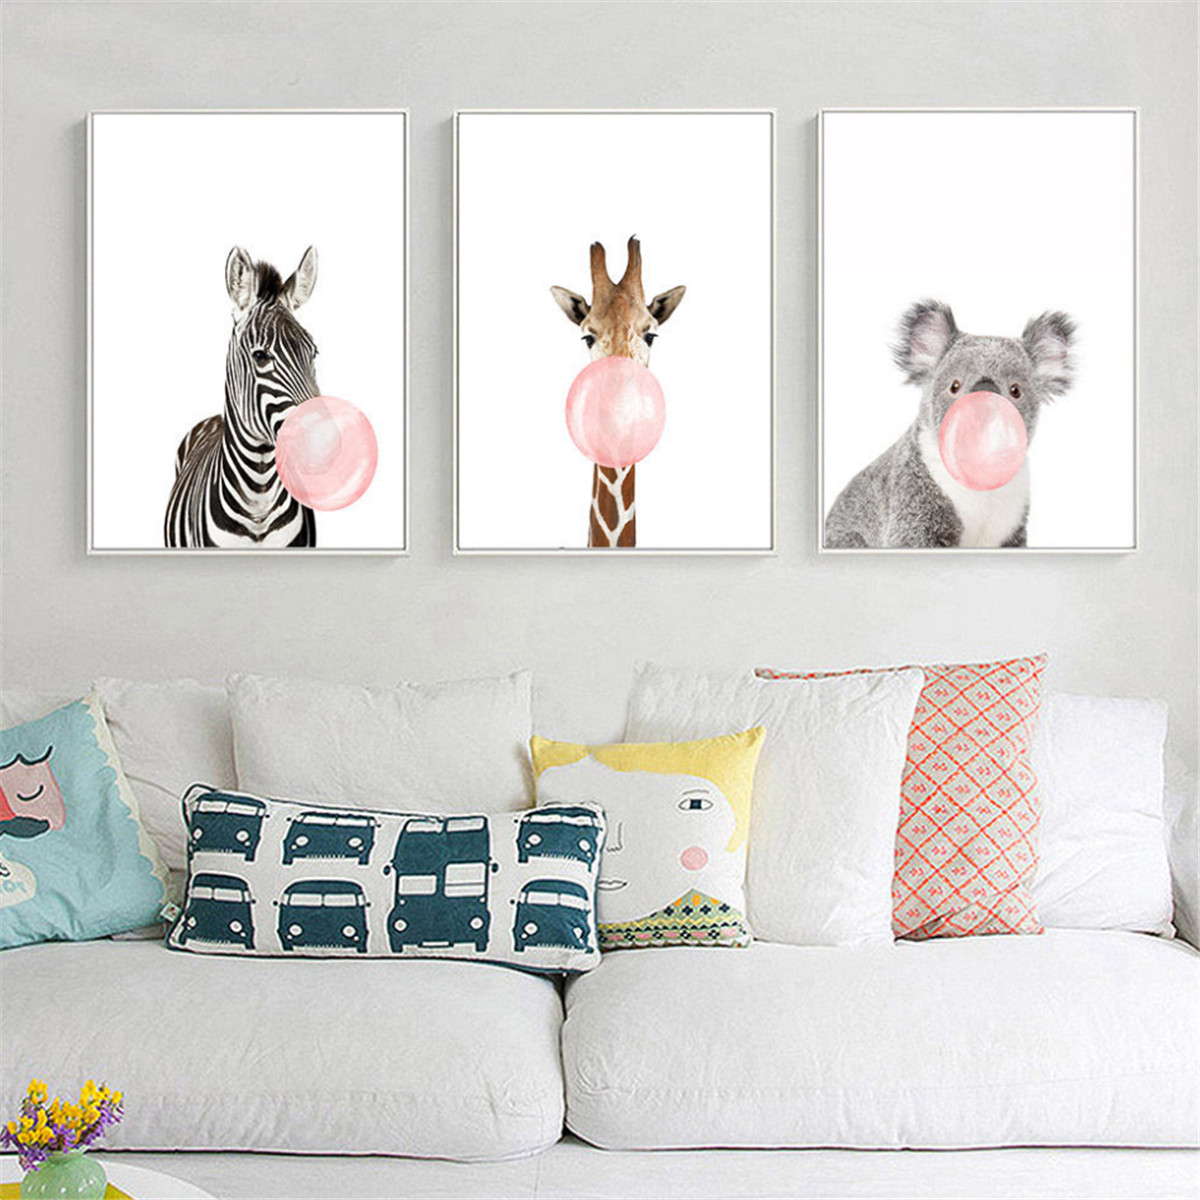 Details about animal koala giraffe zebra canvas poster kid room decor nursery hotel wall print